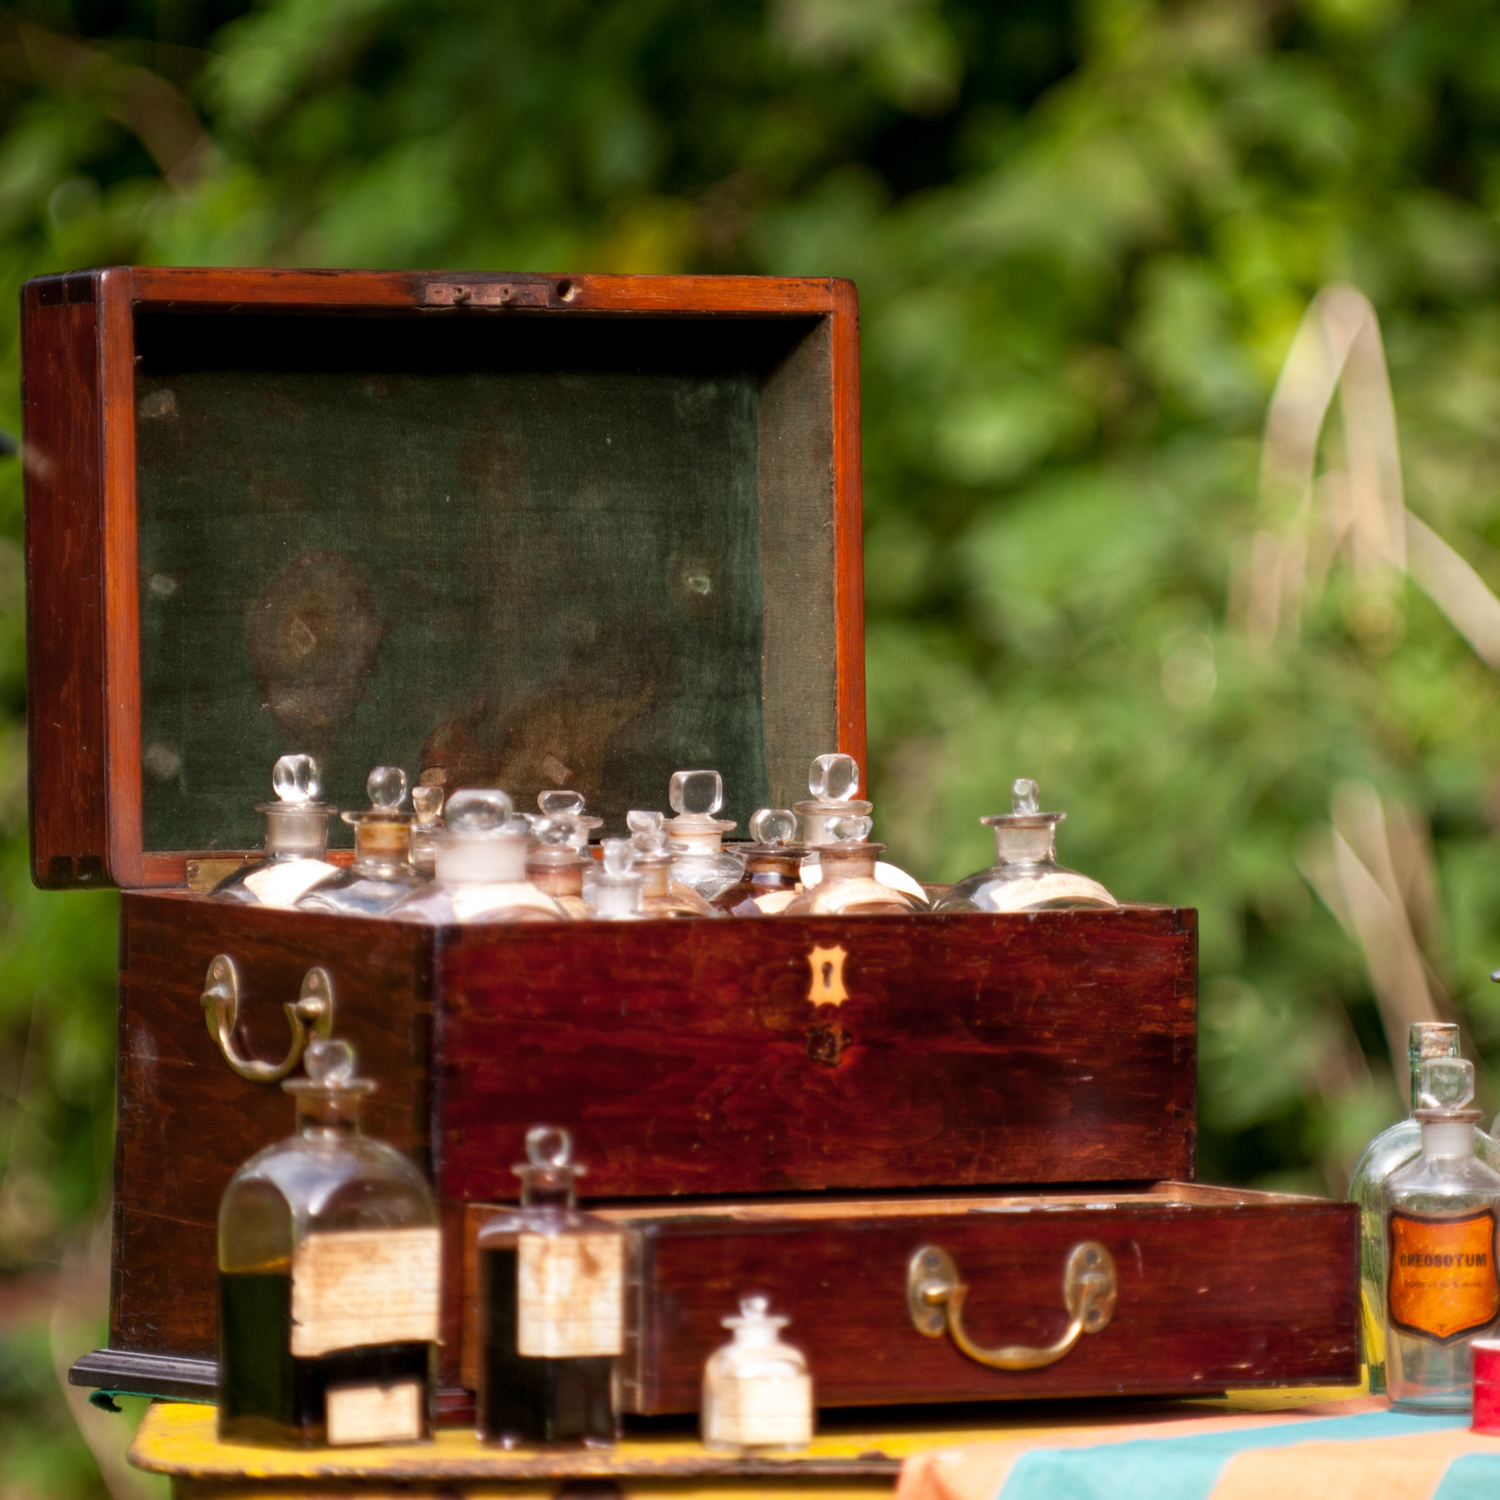 Antique apothecary set - with original medicines still in bottles